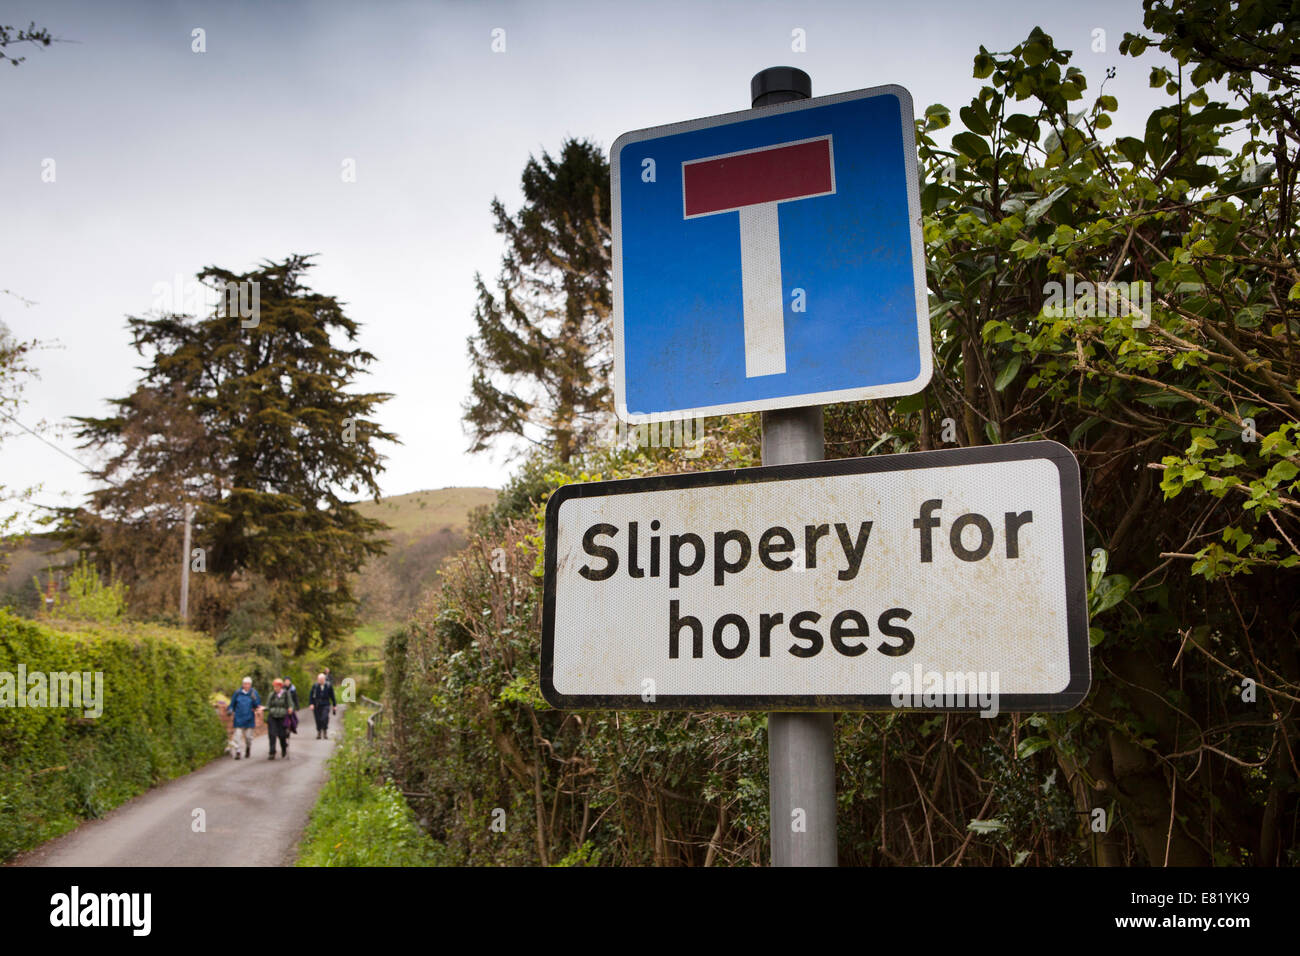 UK, England, Somerset, Bicknoller, Coleridge Way Walkers on path with Slippery for Horses sign - Stock Image